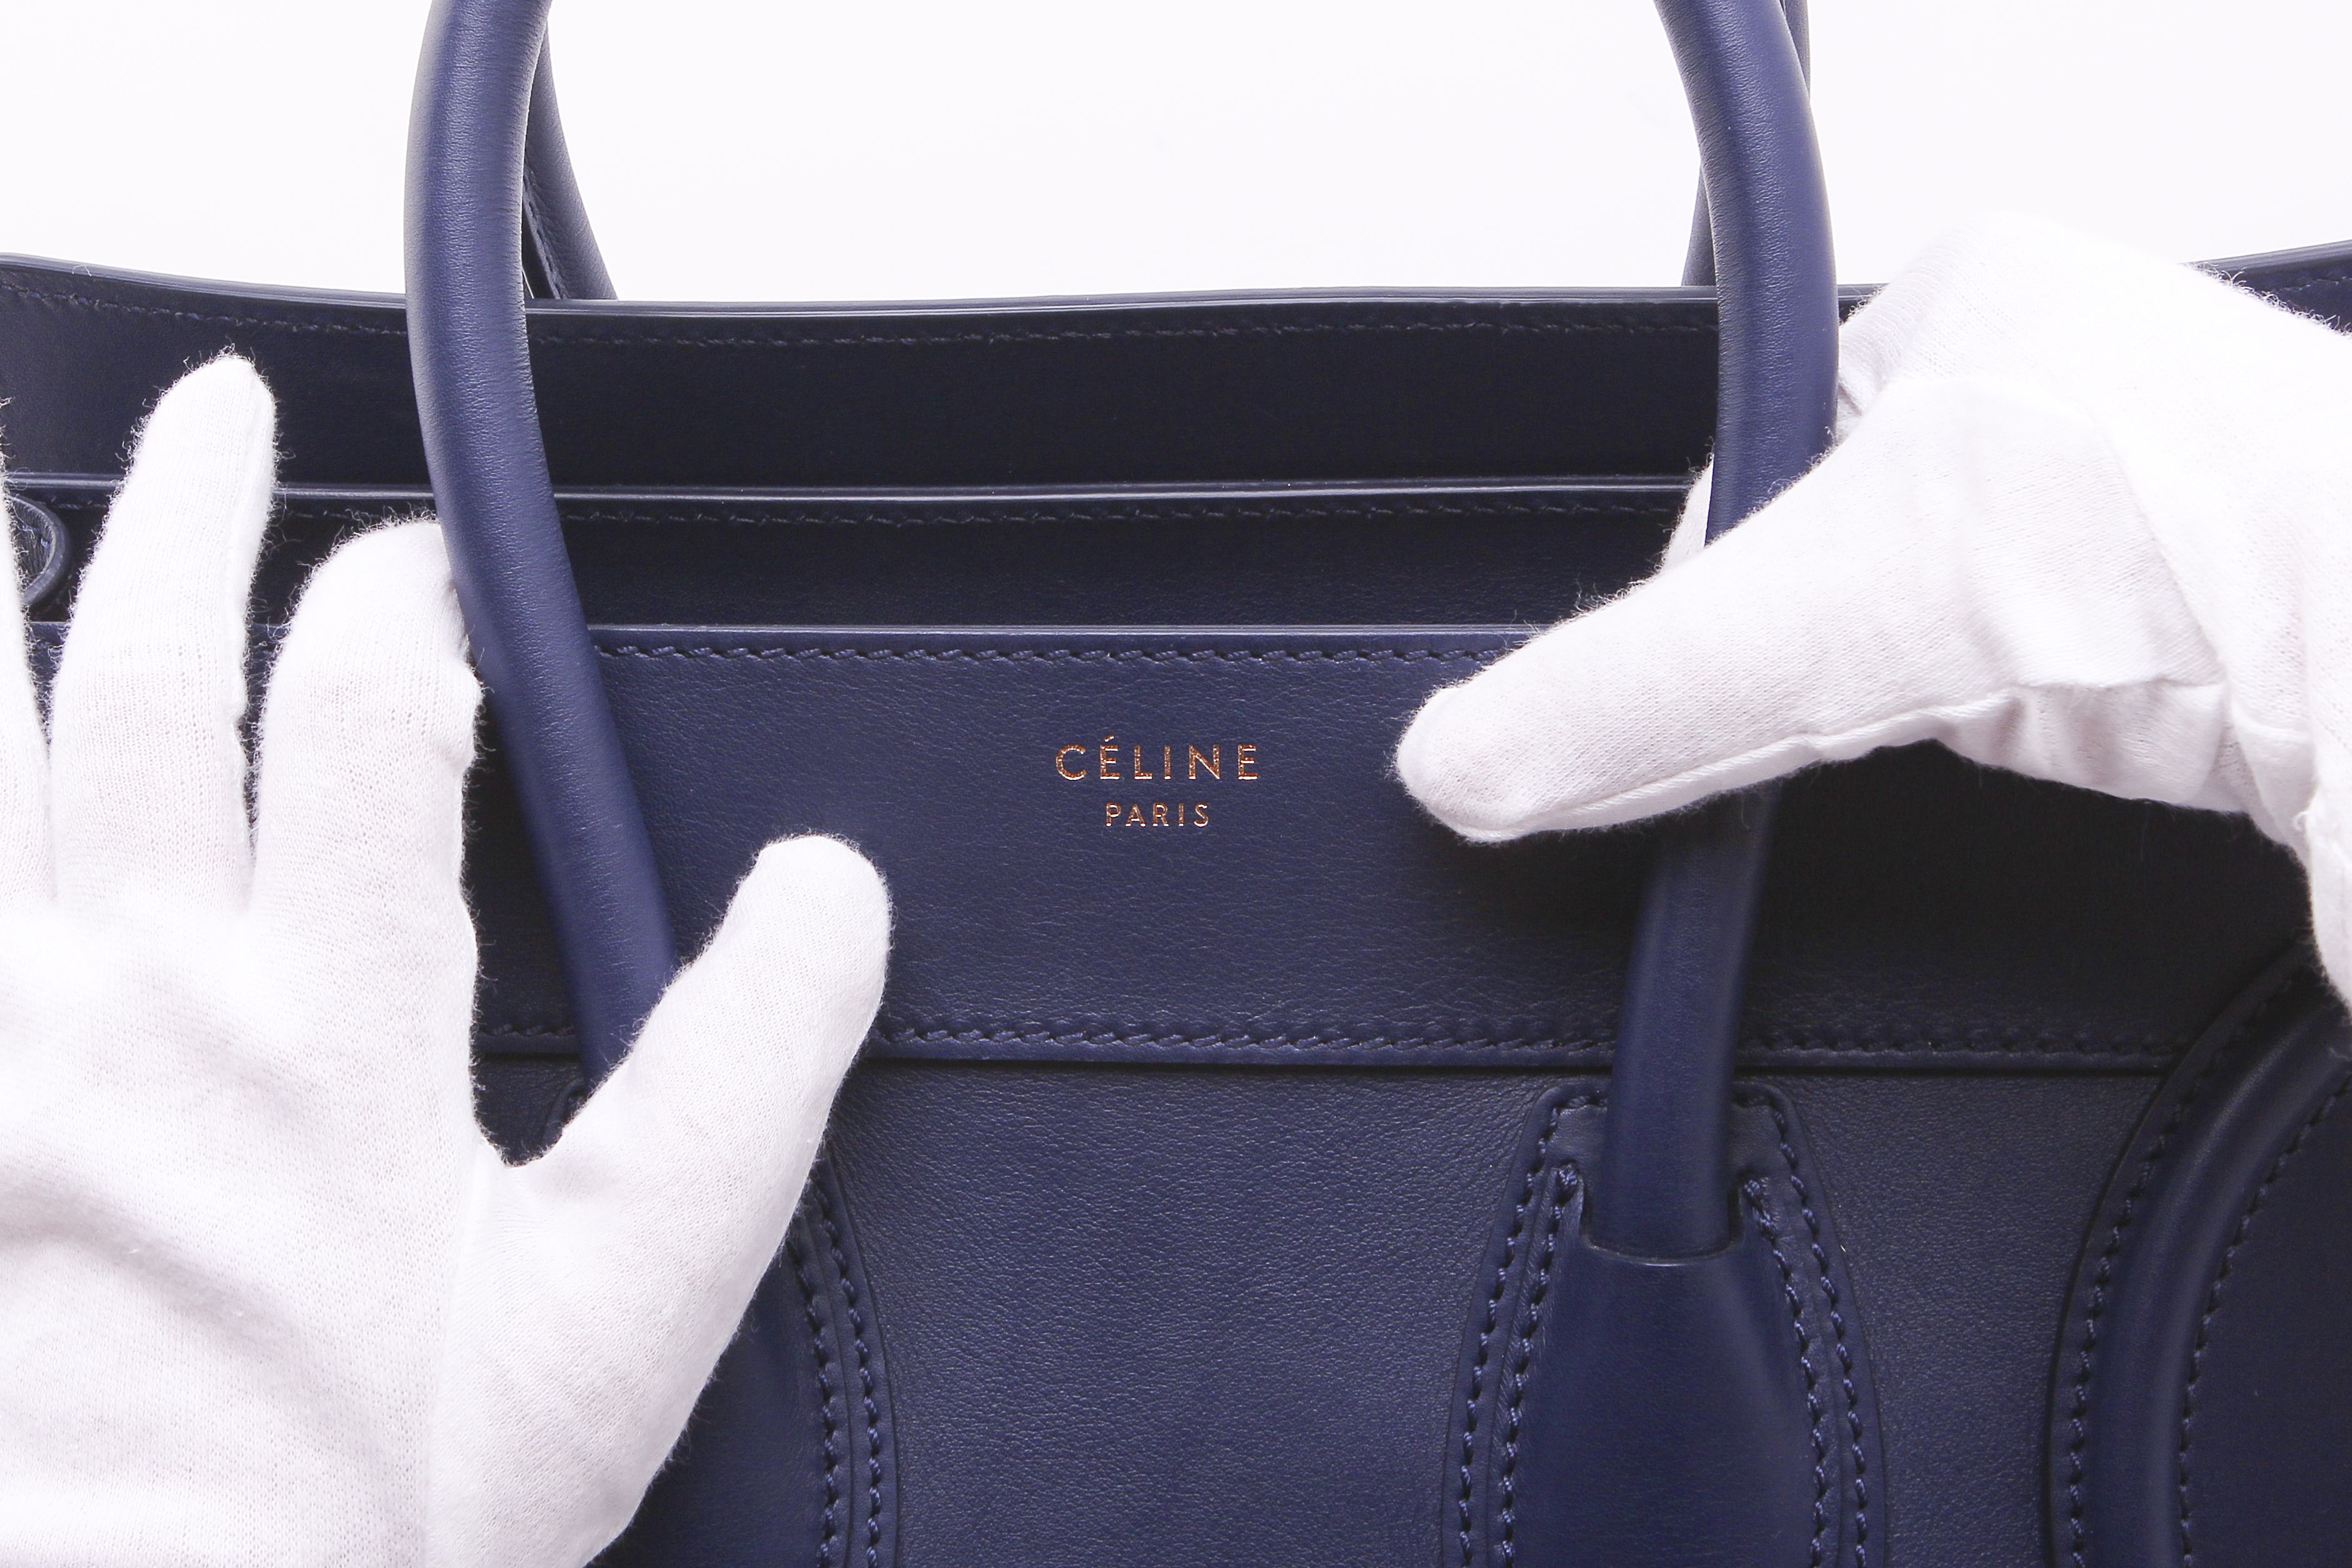 eb1297f4a3 How to spot a fake Céline bag.  authenticity  fake  botd  Celine  bag   onlineshopping  Dubai  HowTo